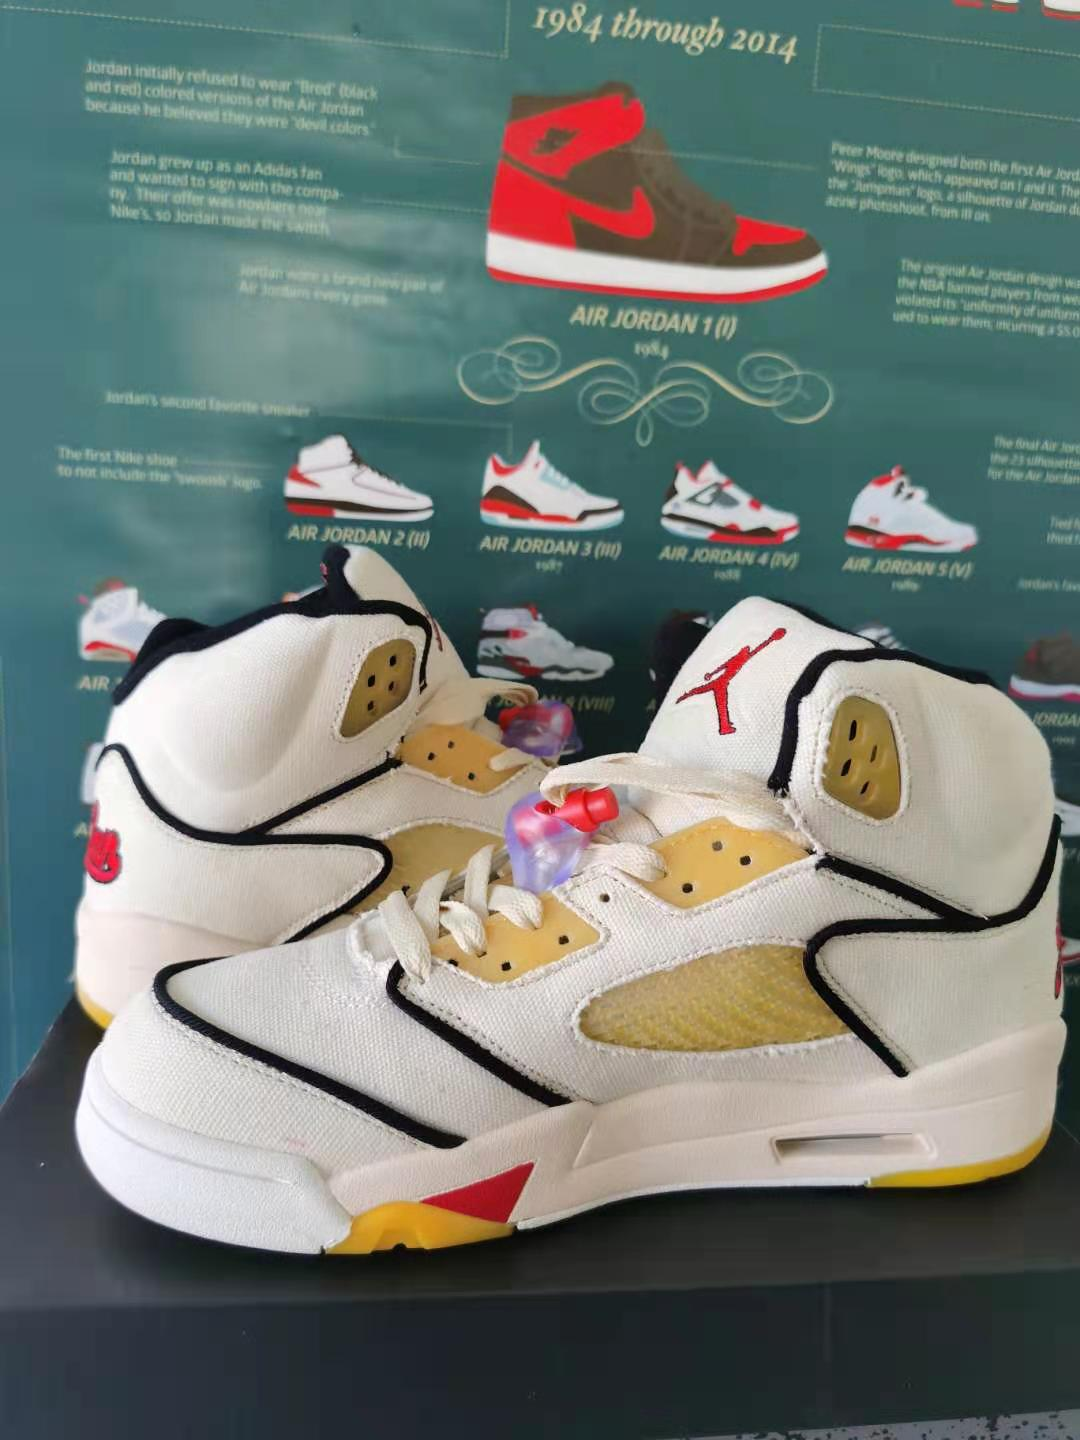 Air Jordan 5 Retro White Yellow Black